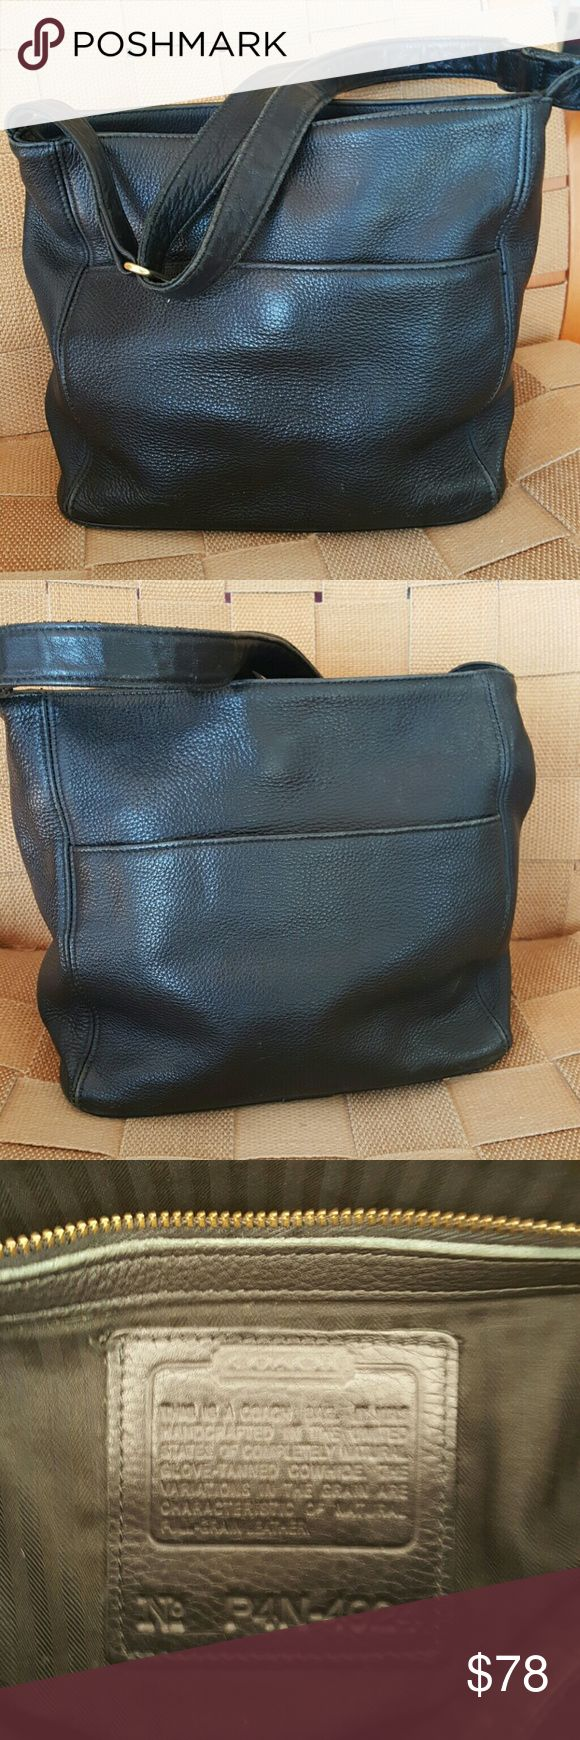 Couch vintage authentic crossbody bag Coach pebbled leather bag  made in the USA, with lots of compartments inside,  2 pockets outside. Adjustable strap   Soft leather and in wonderful condition Coach Bags Crossbody Bags